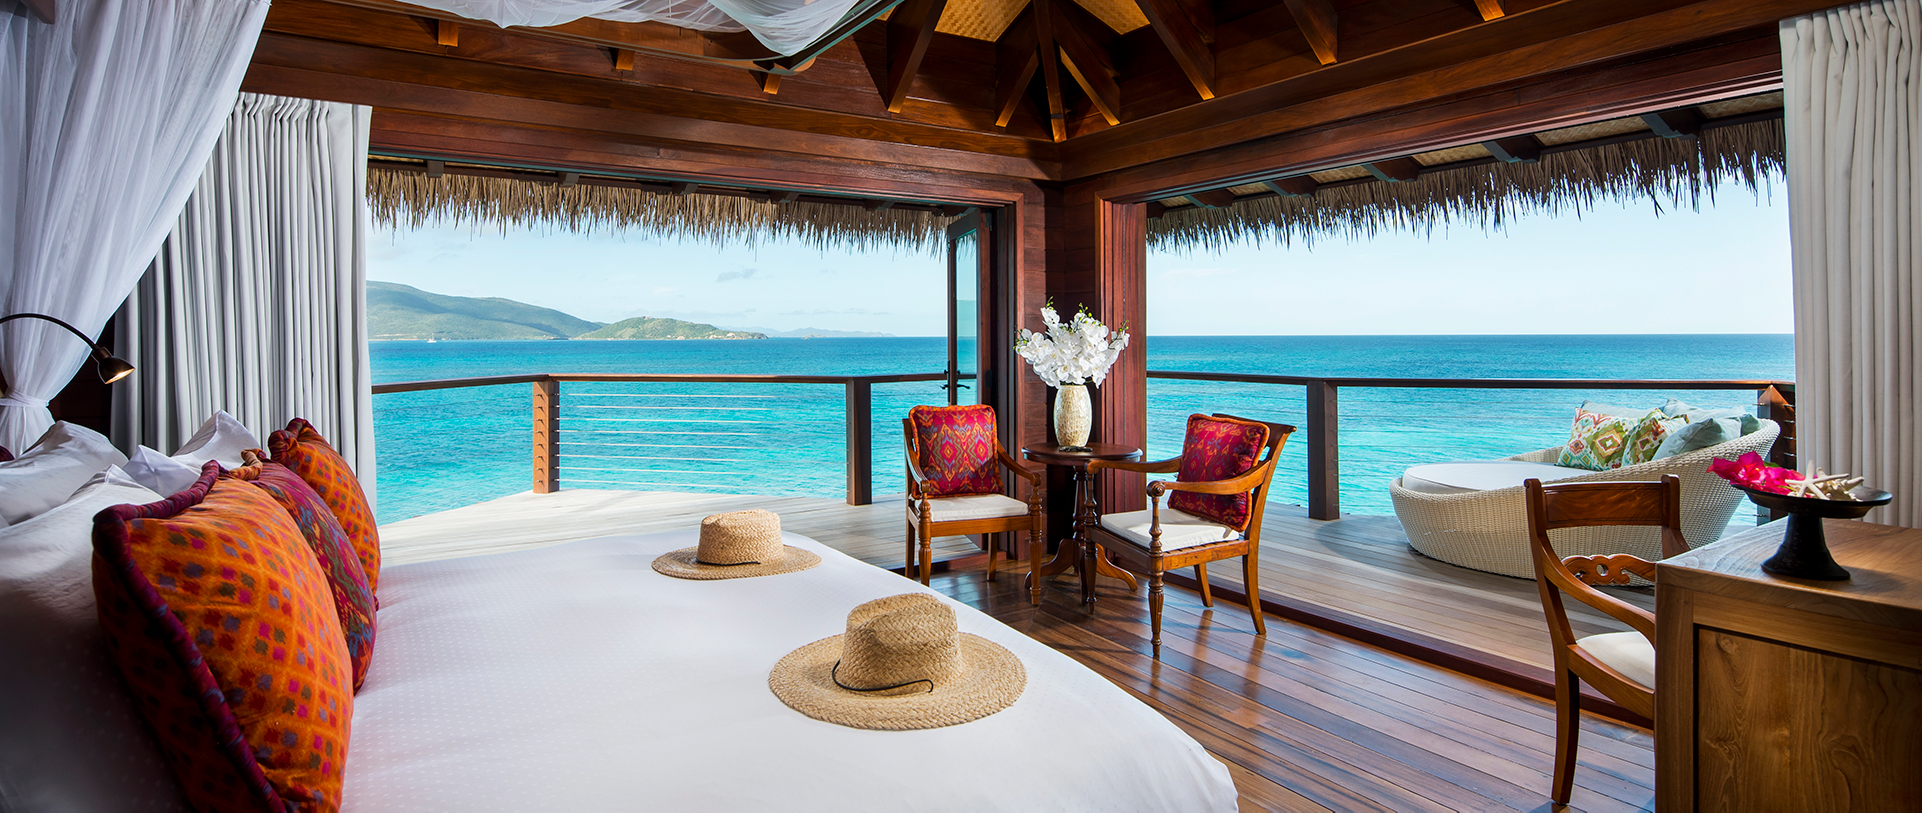 https://www.virginlimitededition.com/en/necker-island/the-island